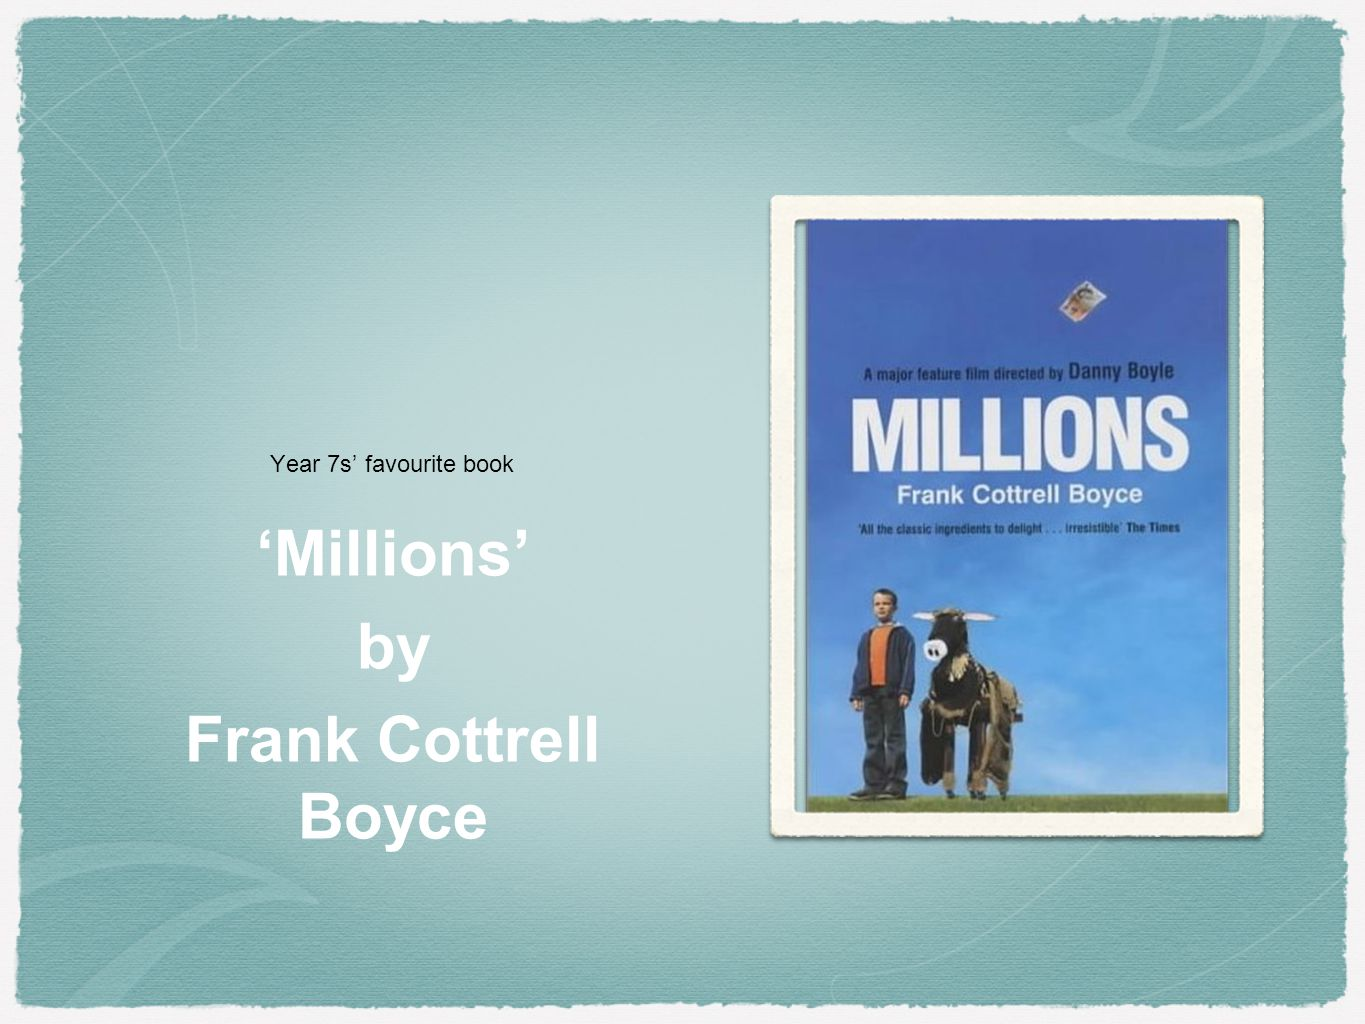 Year 7s' favourite book 'Millions' by Frank Cottrell Boyce